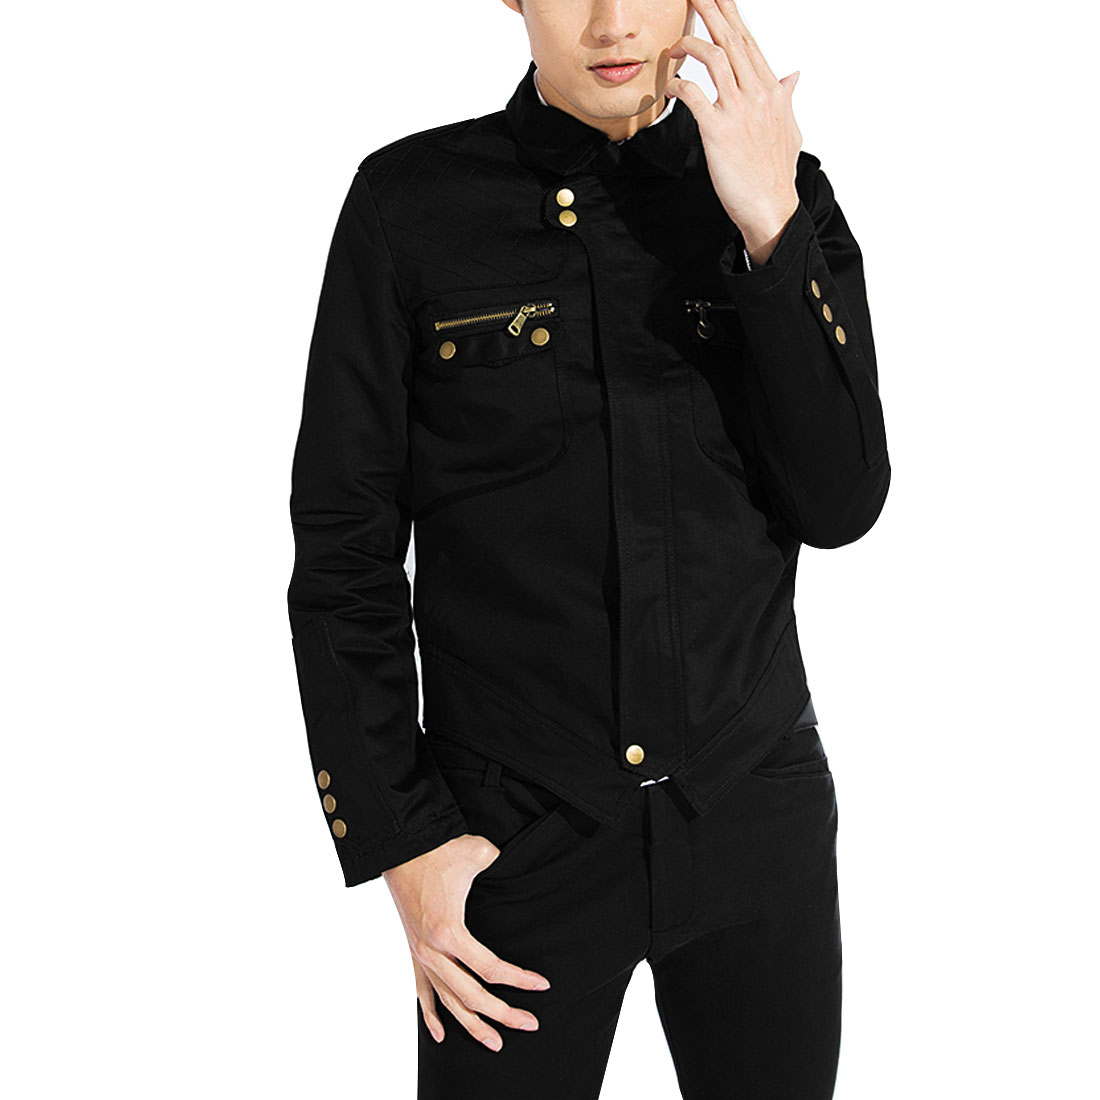 Men S Black Long Sleeve Design Point Collar Front Closure Casual Jacket